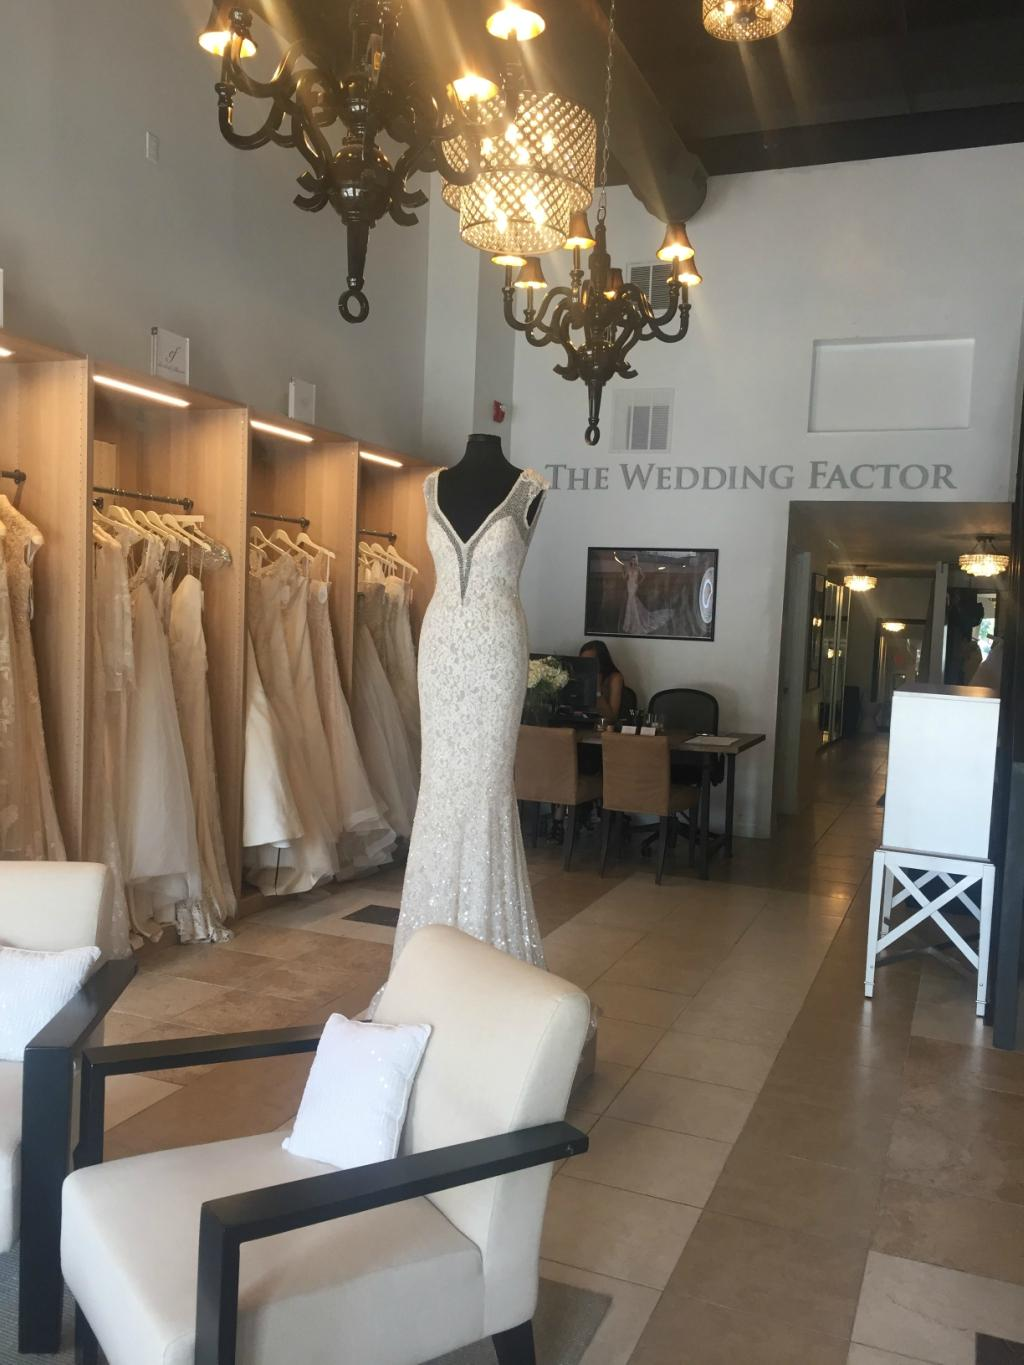 Best Places To Find A Wedding Dress For Your Philadelphia Wedding The Wedding Factor Philadelphia Dress Shop Philly In Love Philadelphia Weddings